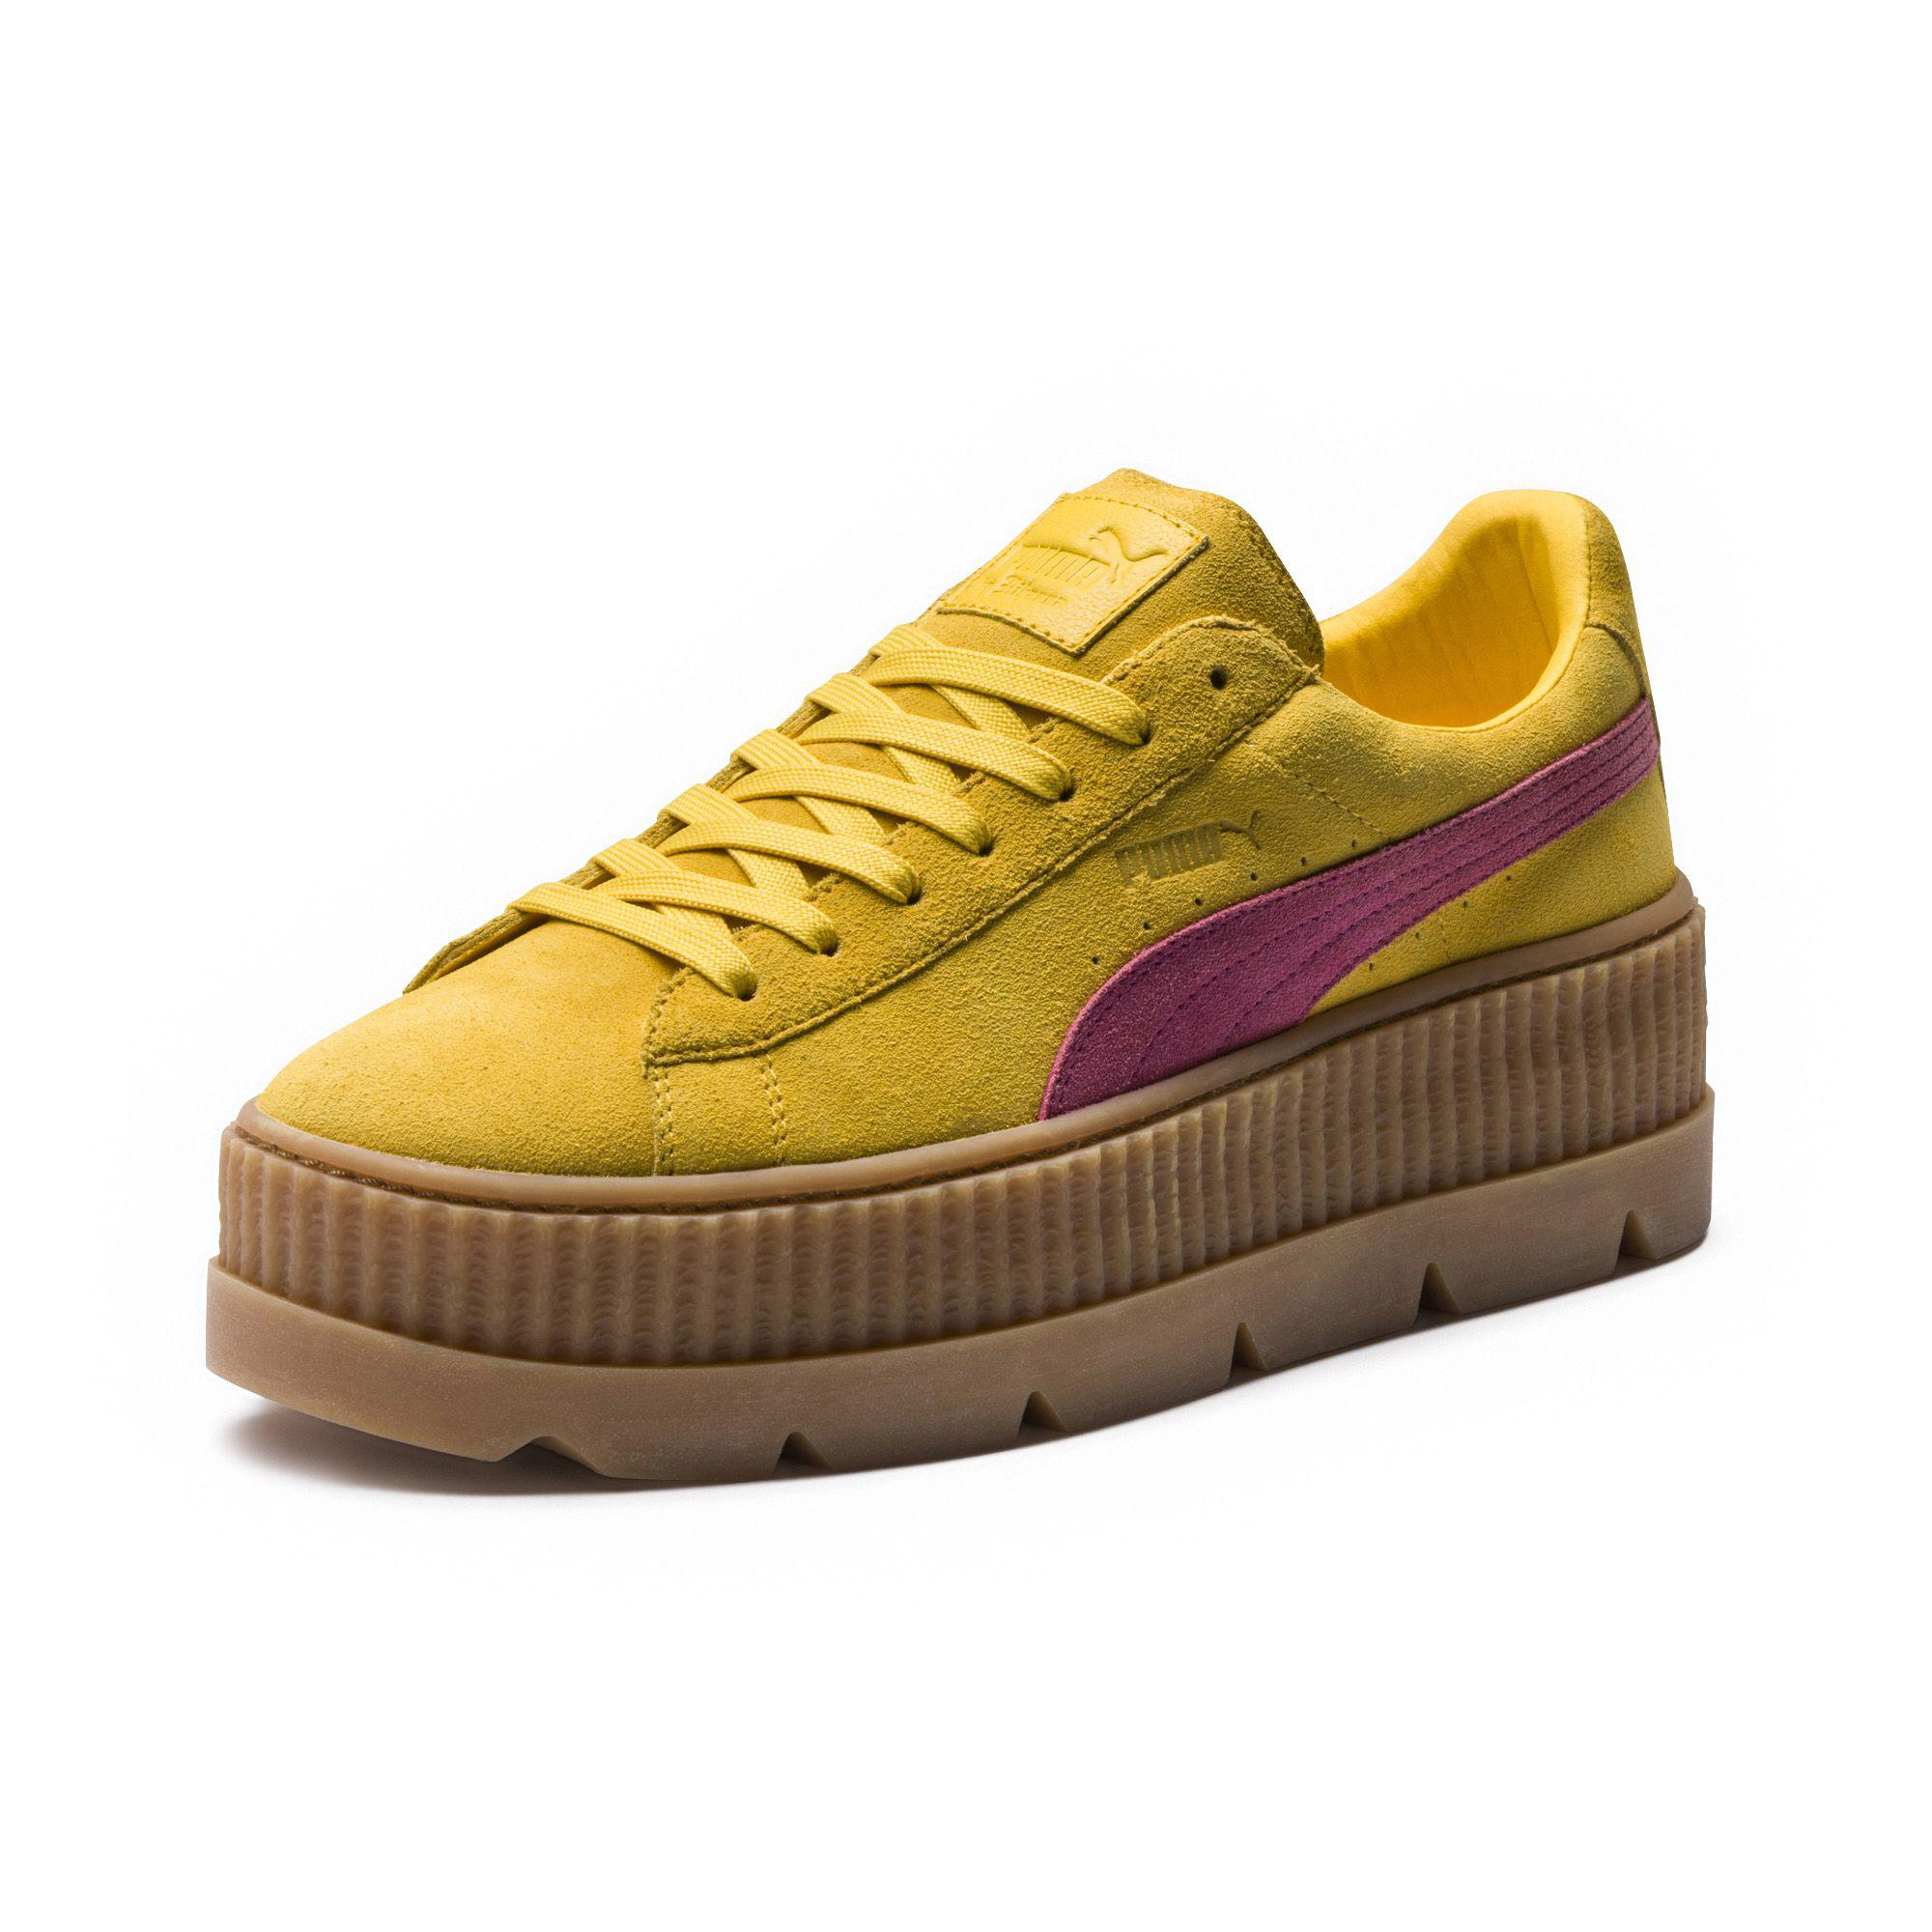 brand new 6f0ef 5221b PUMA Multicolor Fenty Suede Cleated Creeper Women's